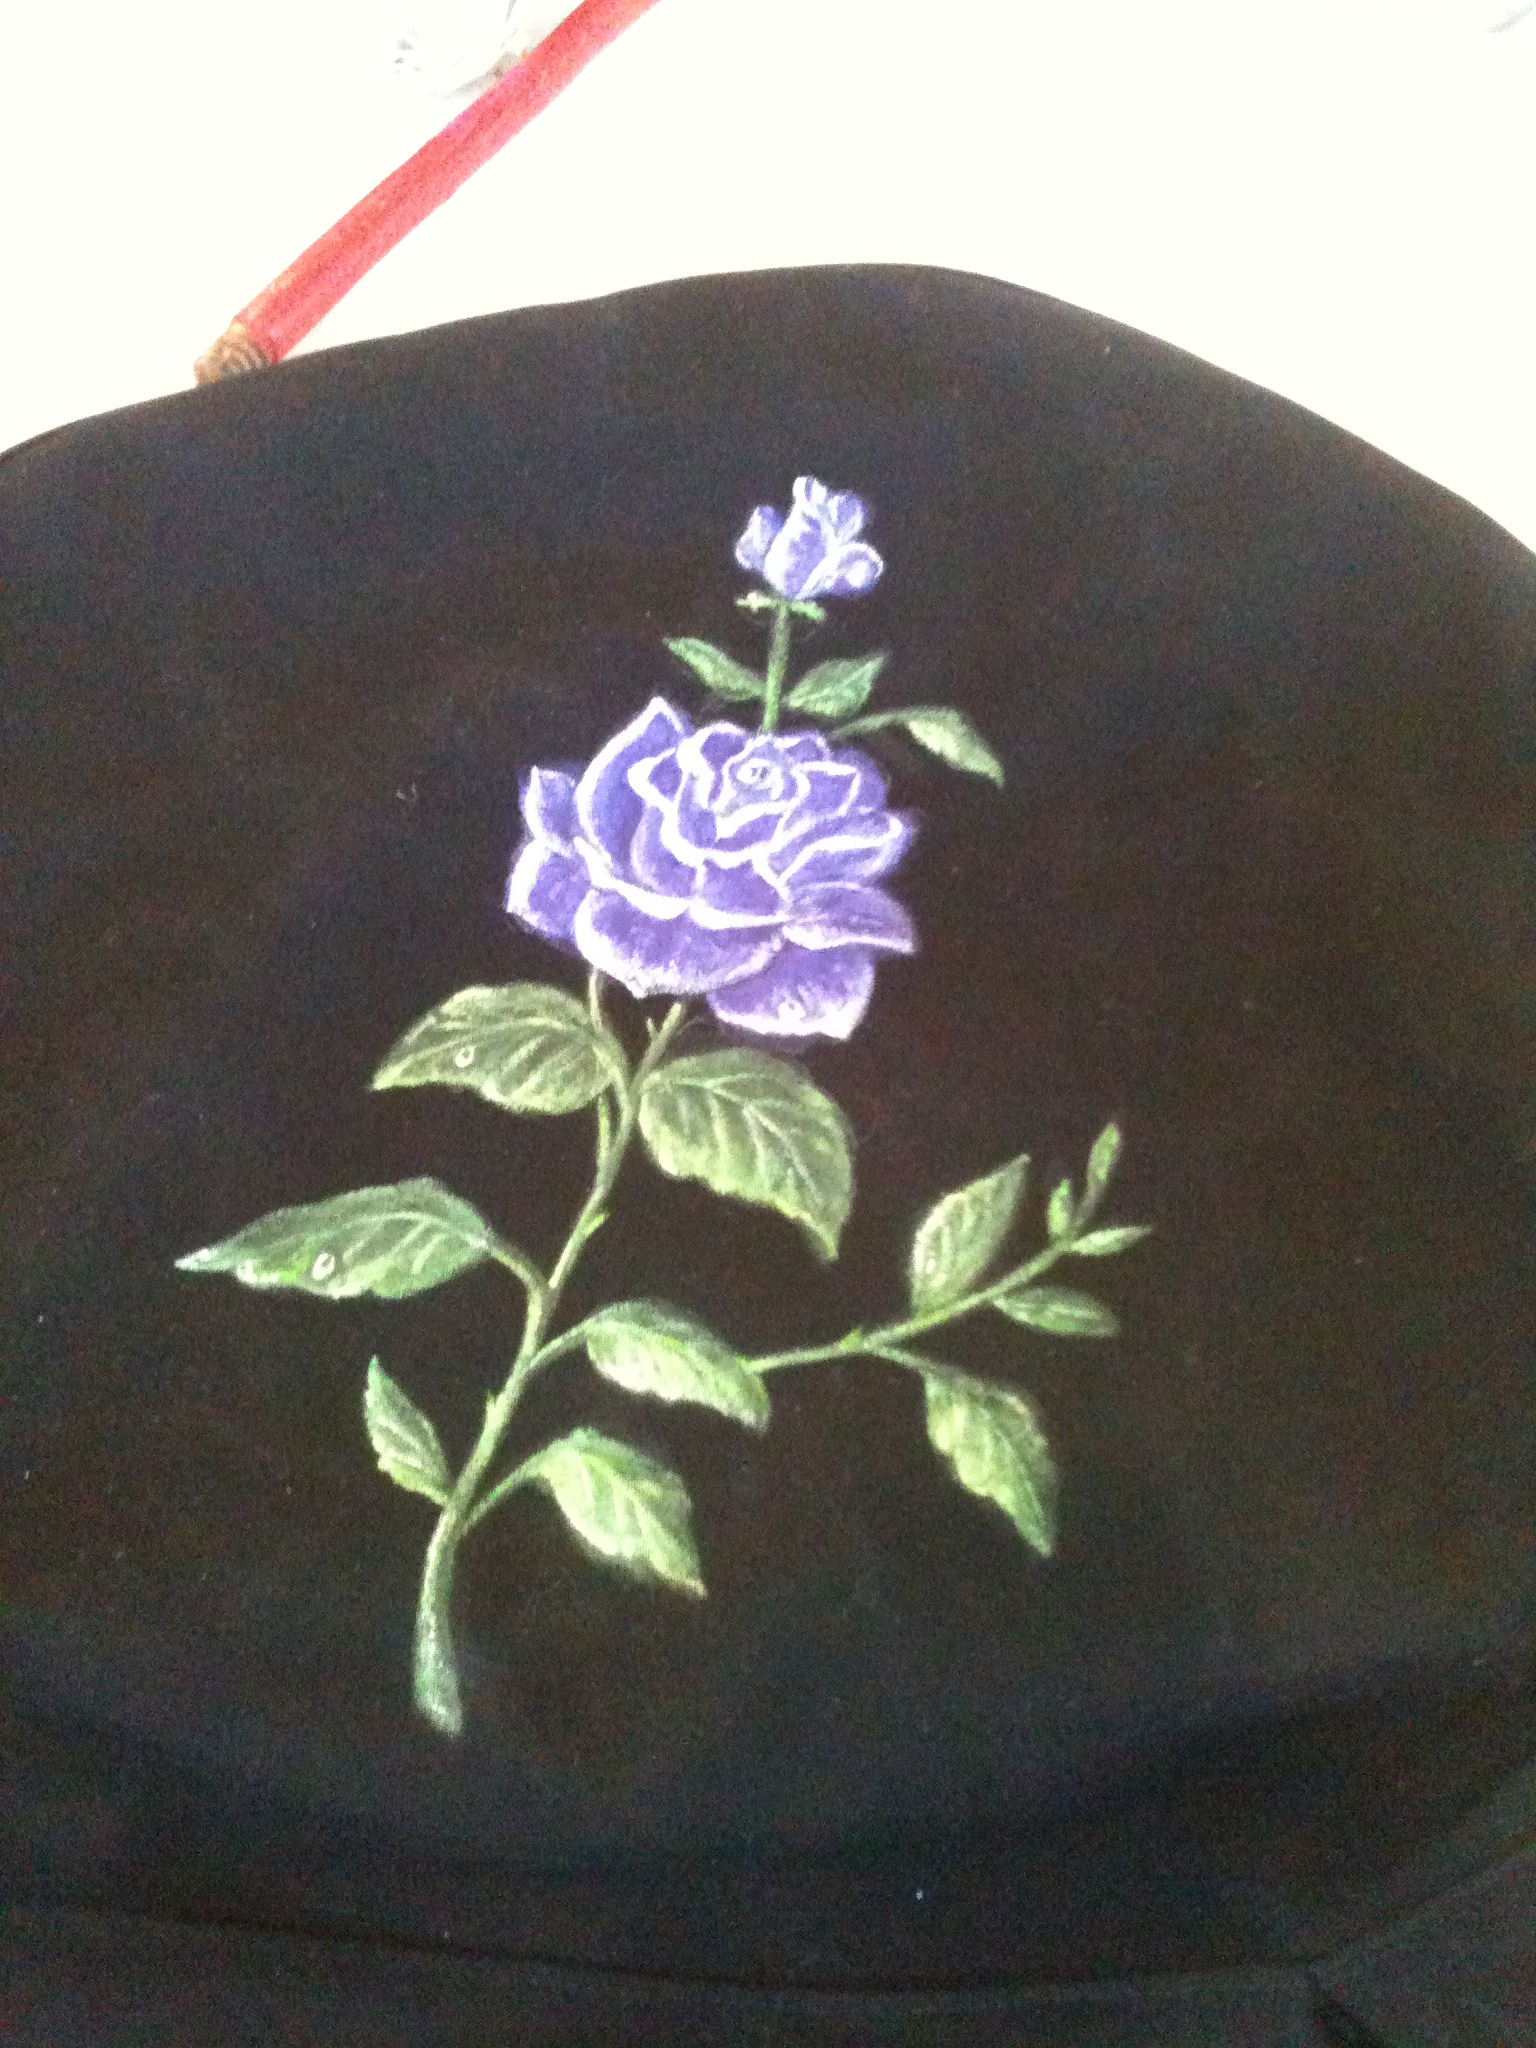 Handpainted on spare tire cover